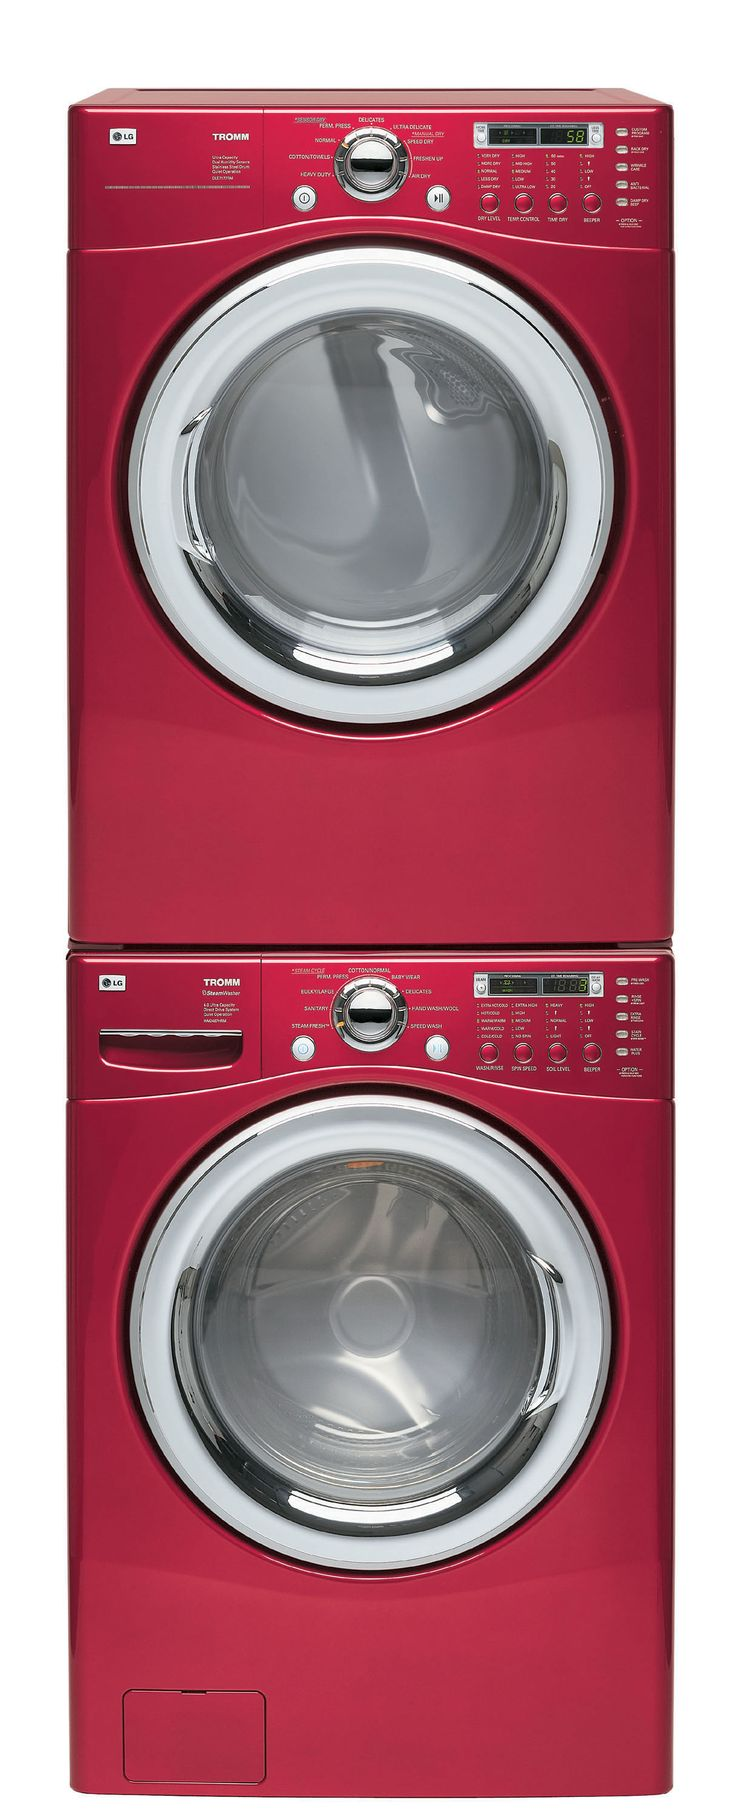 14 Best Images About Washer Dryer Combos On Pinterest